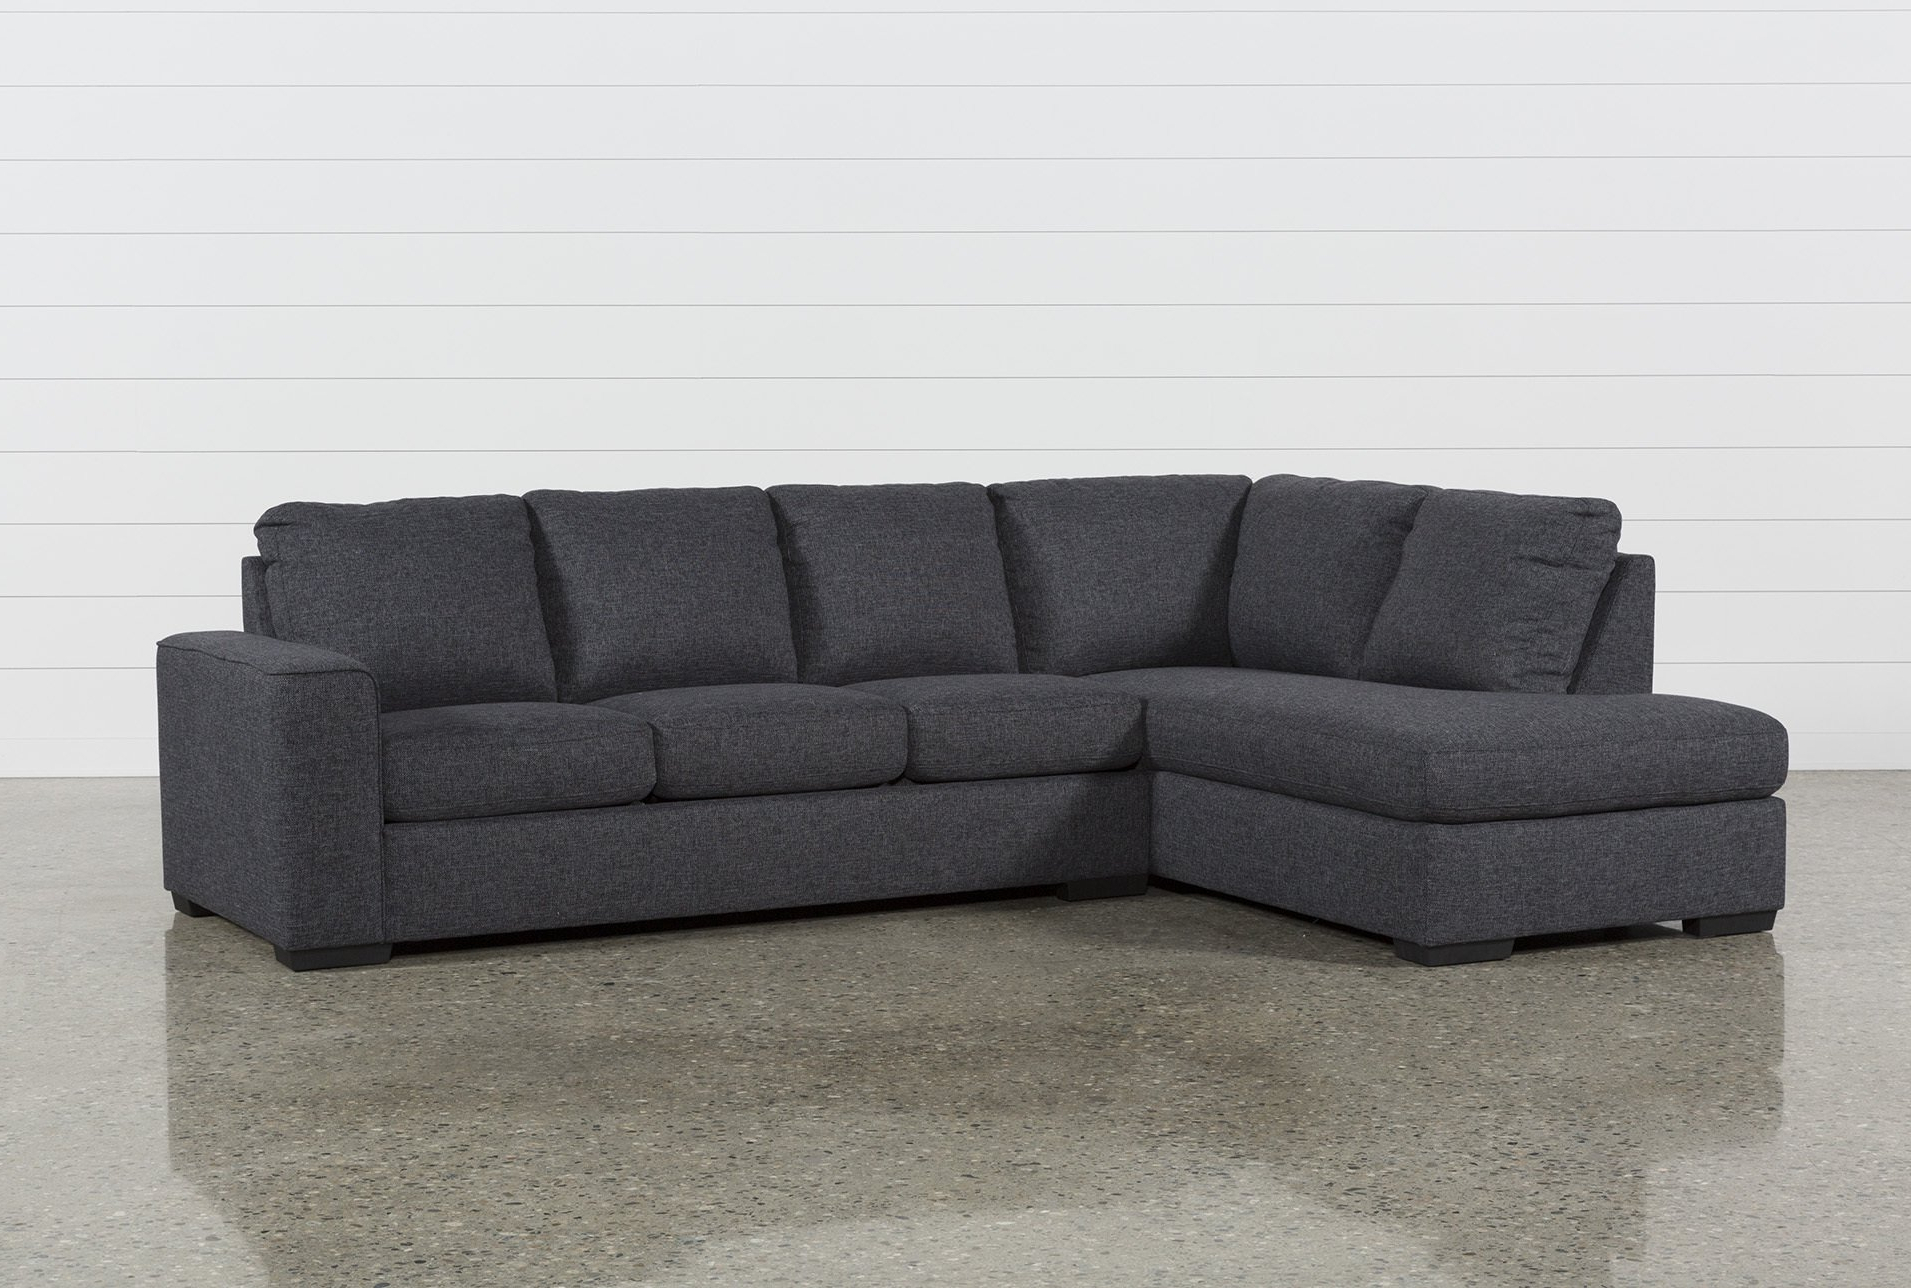 Dark Grey And Products Regarding Aspen 2 Piece Sleeper Sectionals With Raf Chaise (View 8 of 20)